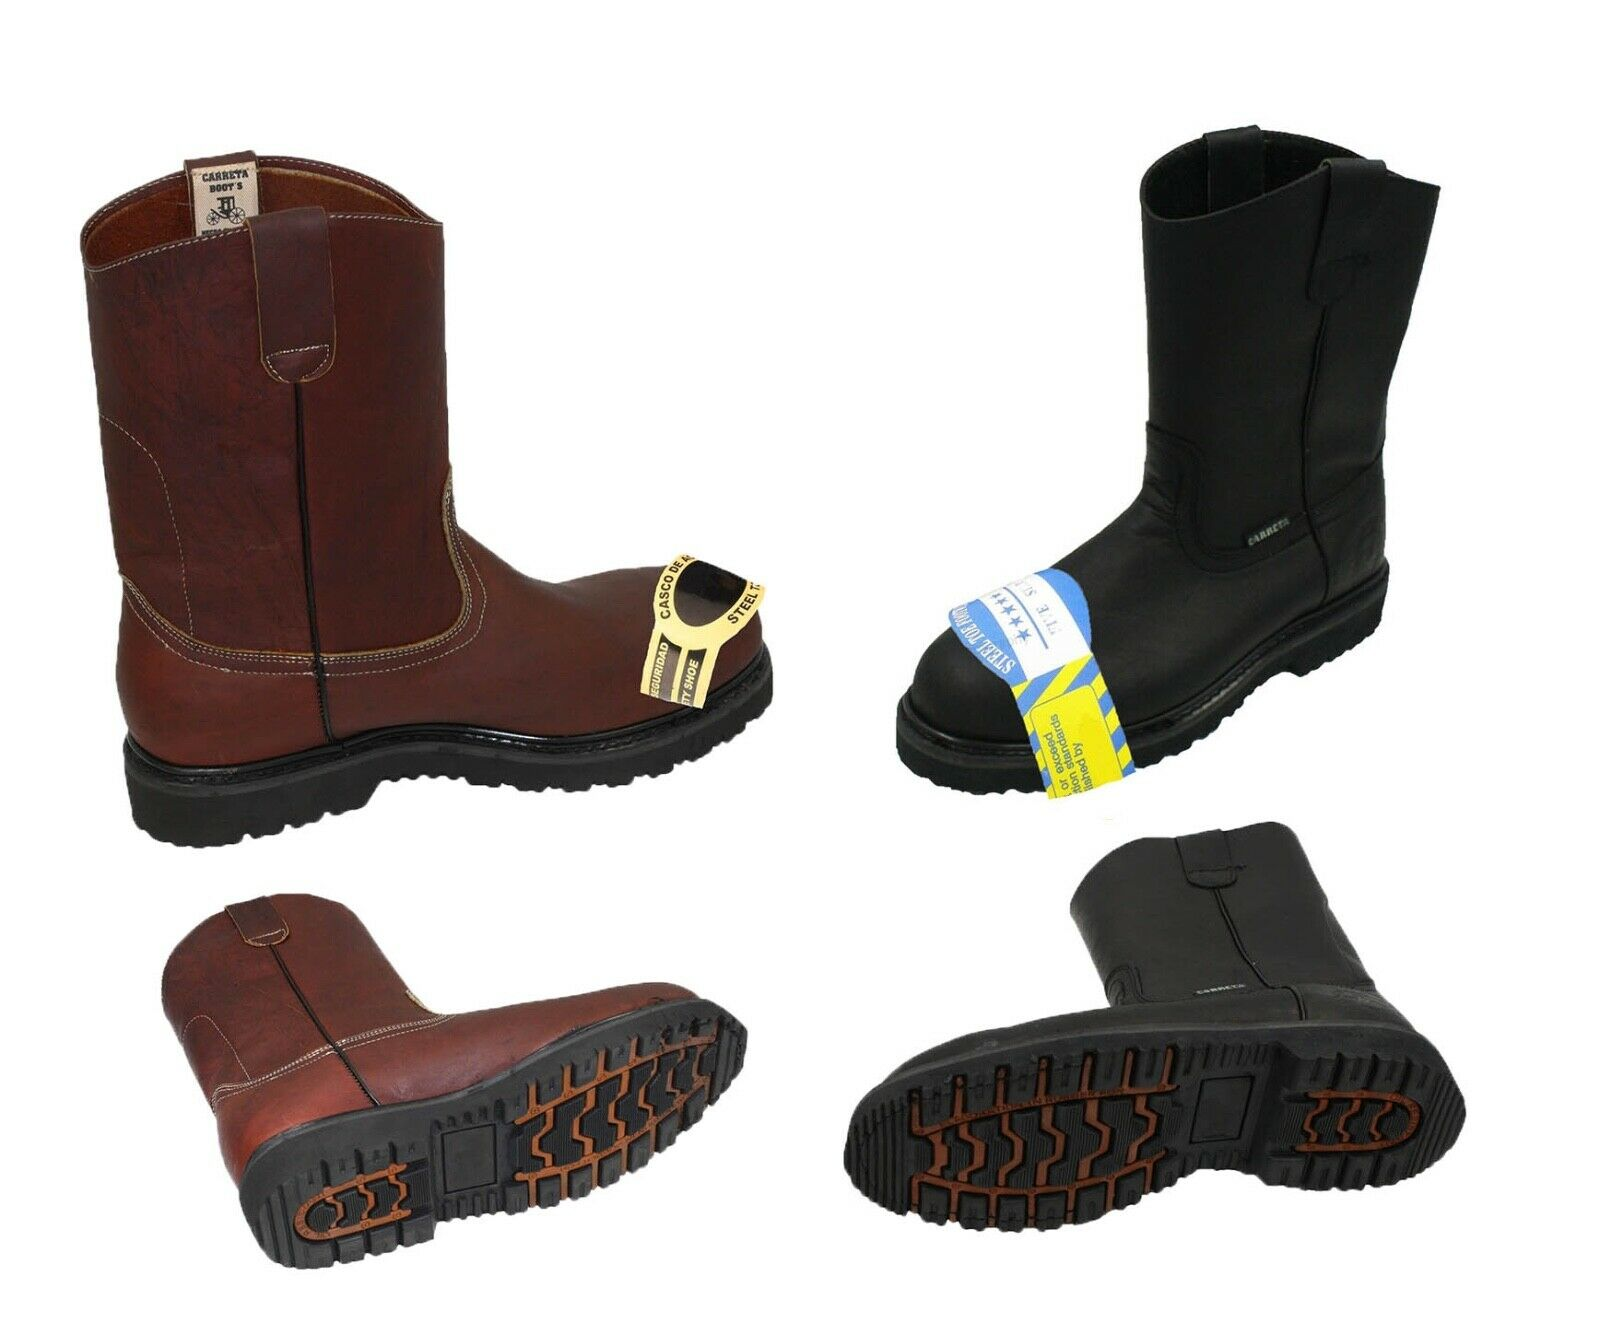 567378856f7 MEN'S STEEL TOE WORK BOOTS PULL ON SAFETY GENUINE LEATHER OIL RESISTANT #410